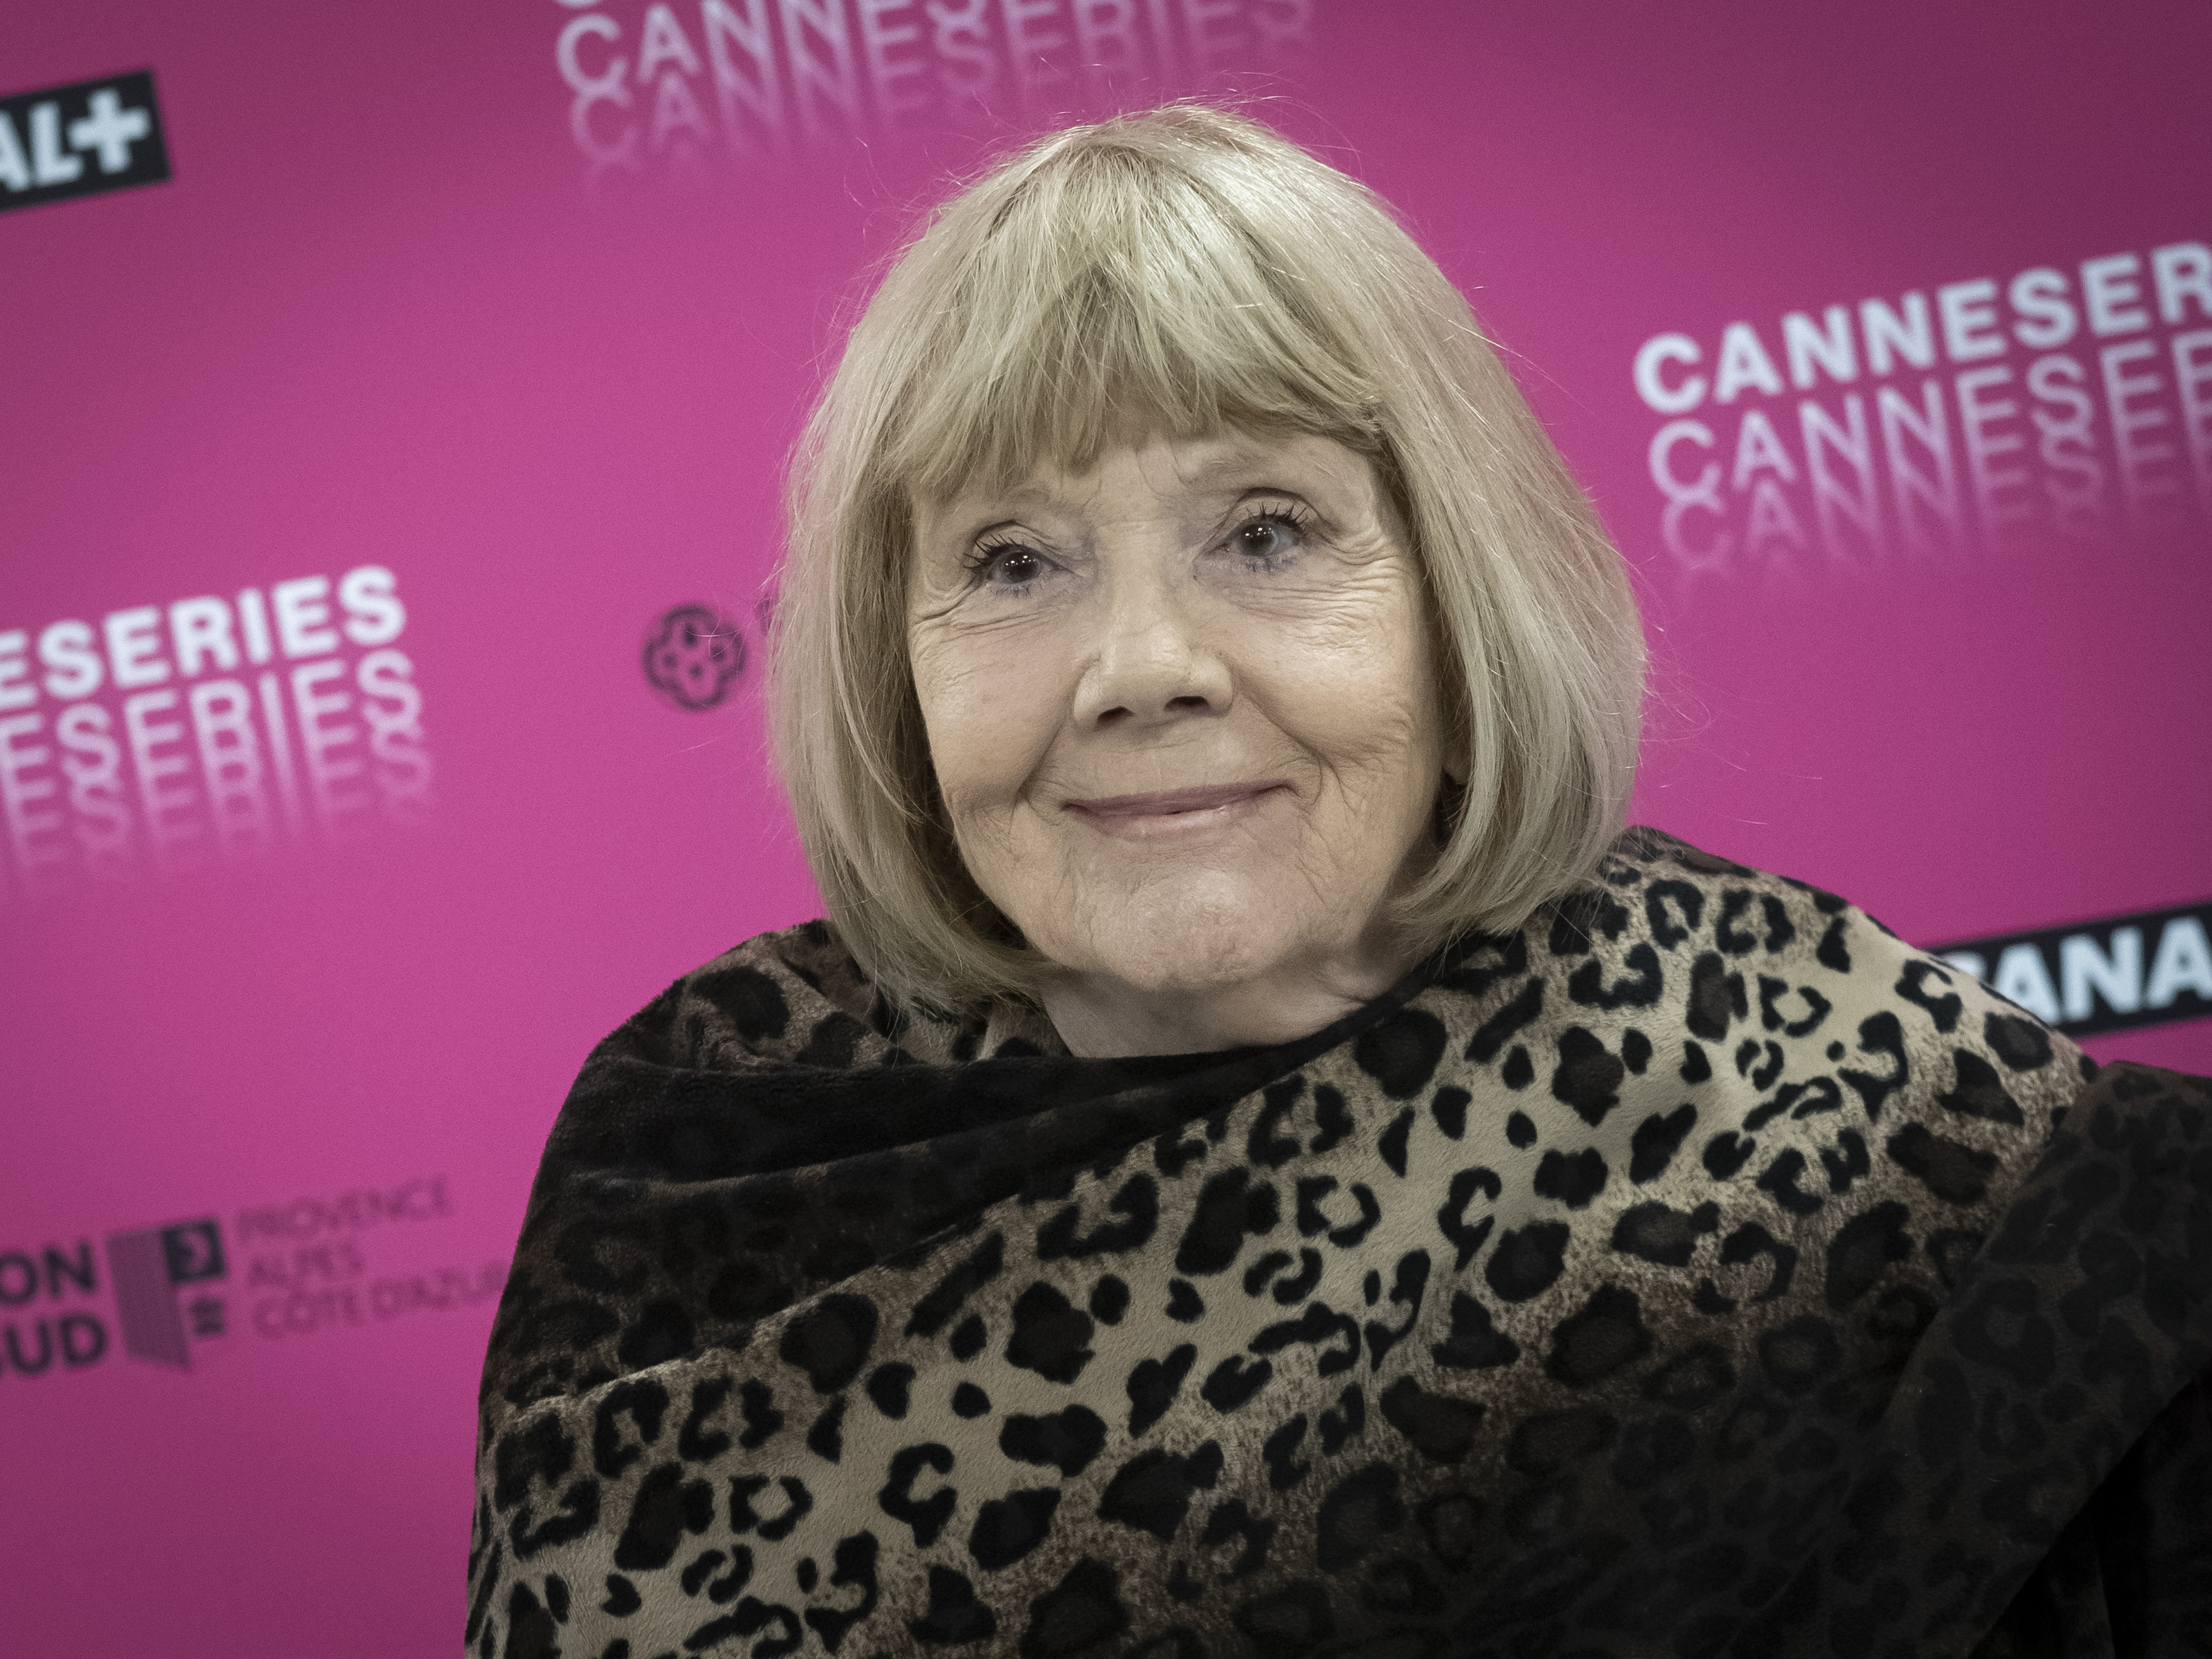 CANNES, FRANCE - APRIL 06: Dame Diana Rigg attends her masterclass during the 2nd Canneseries International Series Festival : day two on April 06, 2019 in Cannes, France. (Photo by Arnold Jerocki/Getty Images)